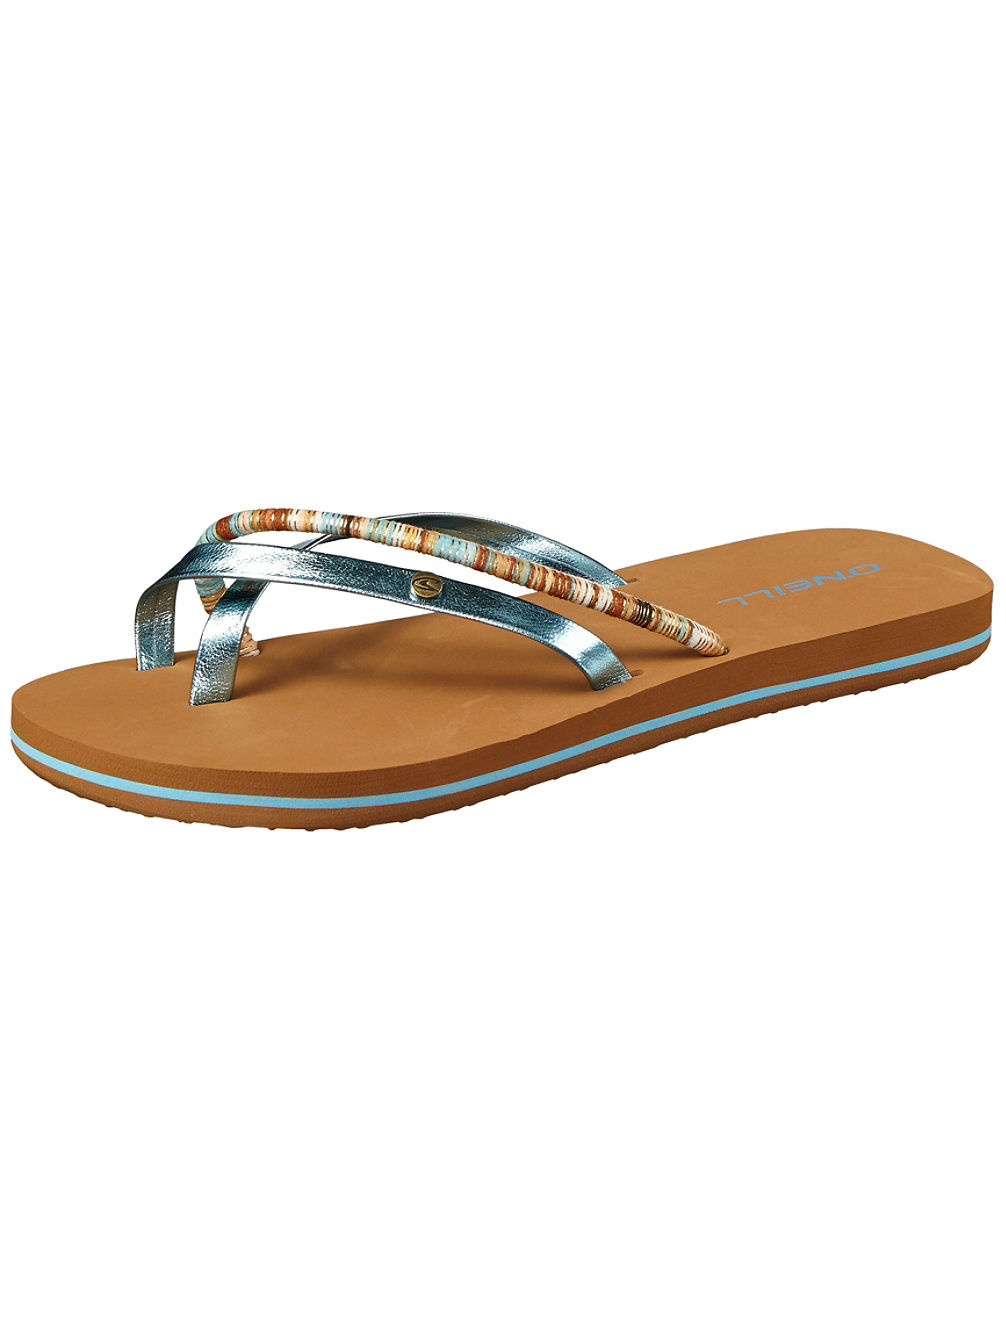 Queen II Sandals Women